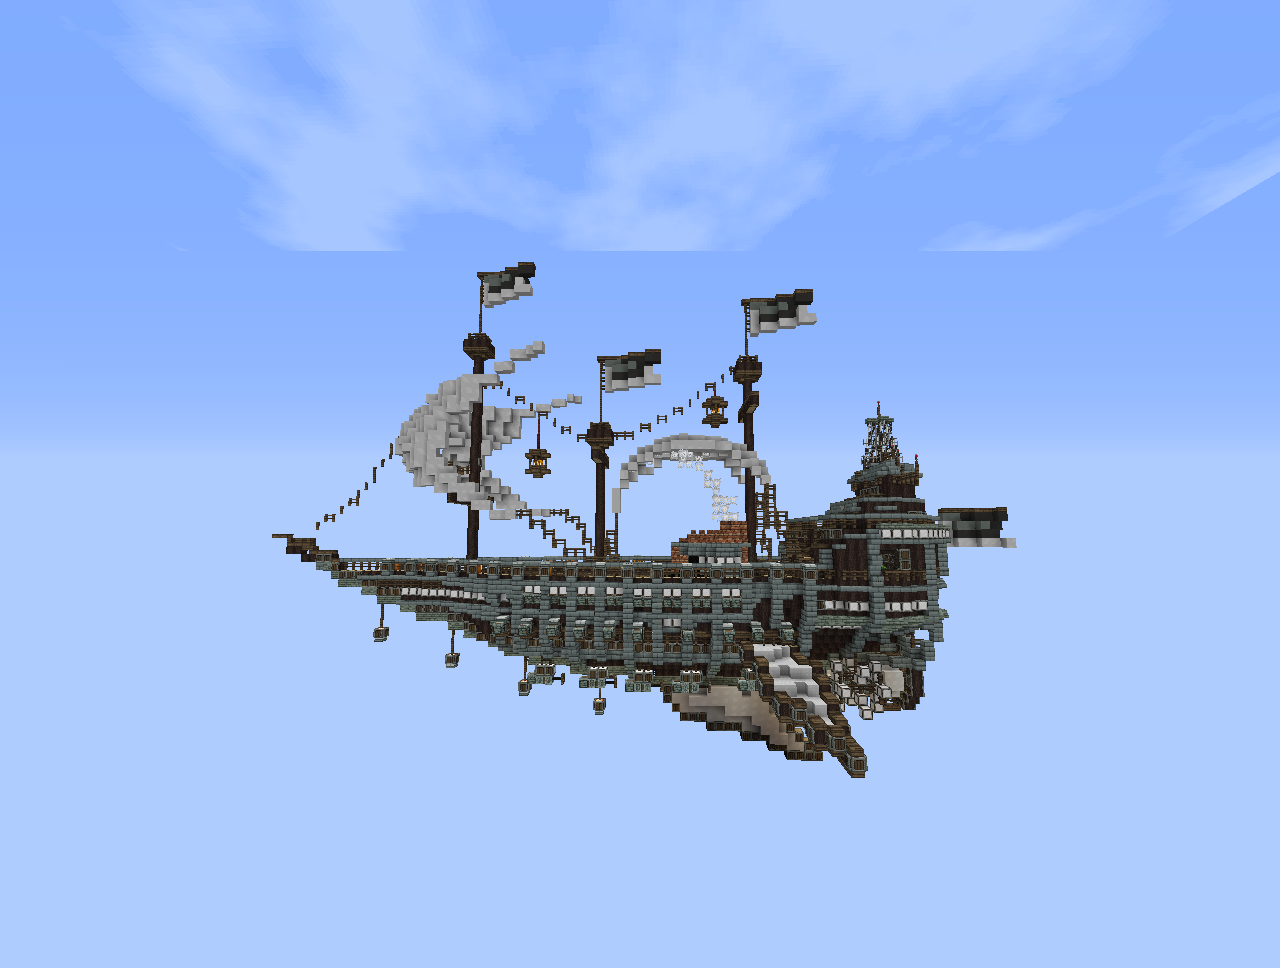 minecraft big pirate ship map download